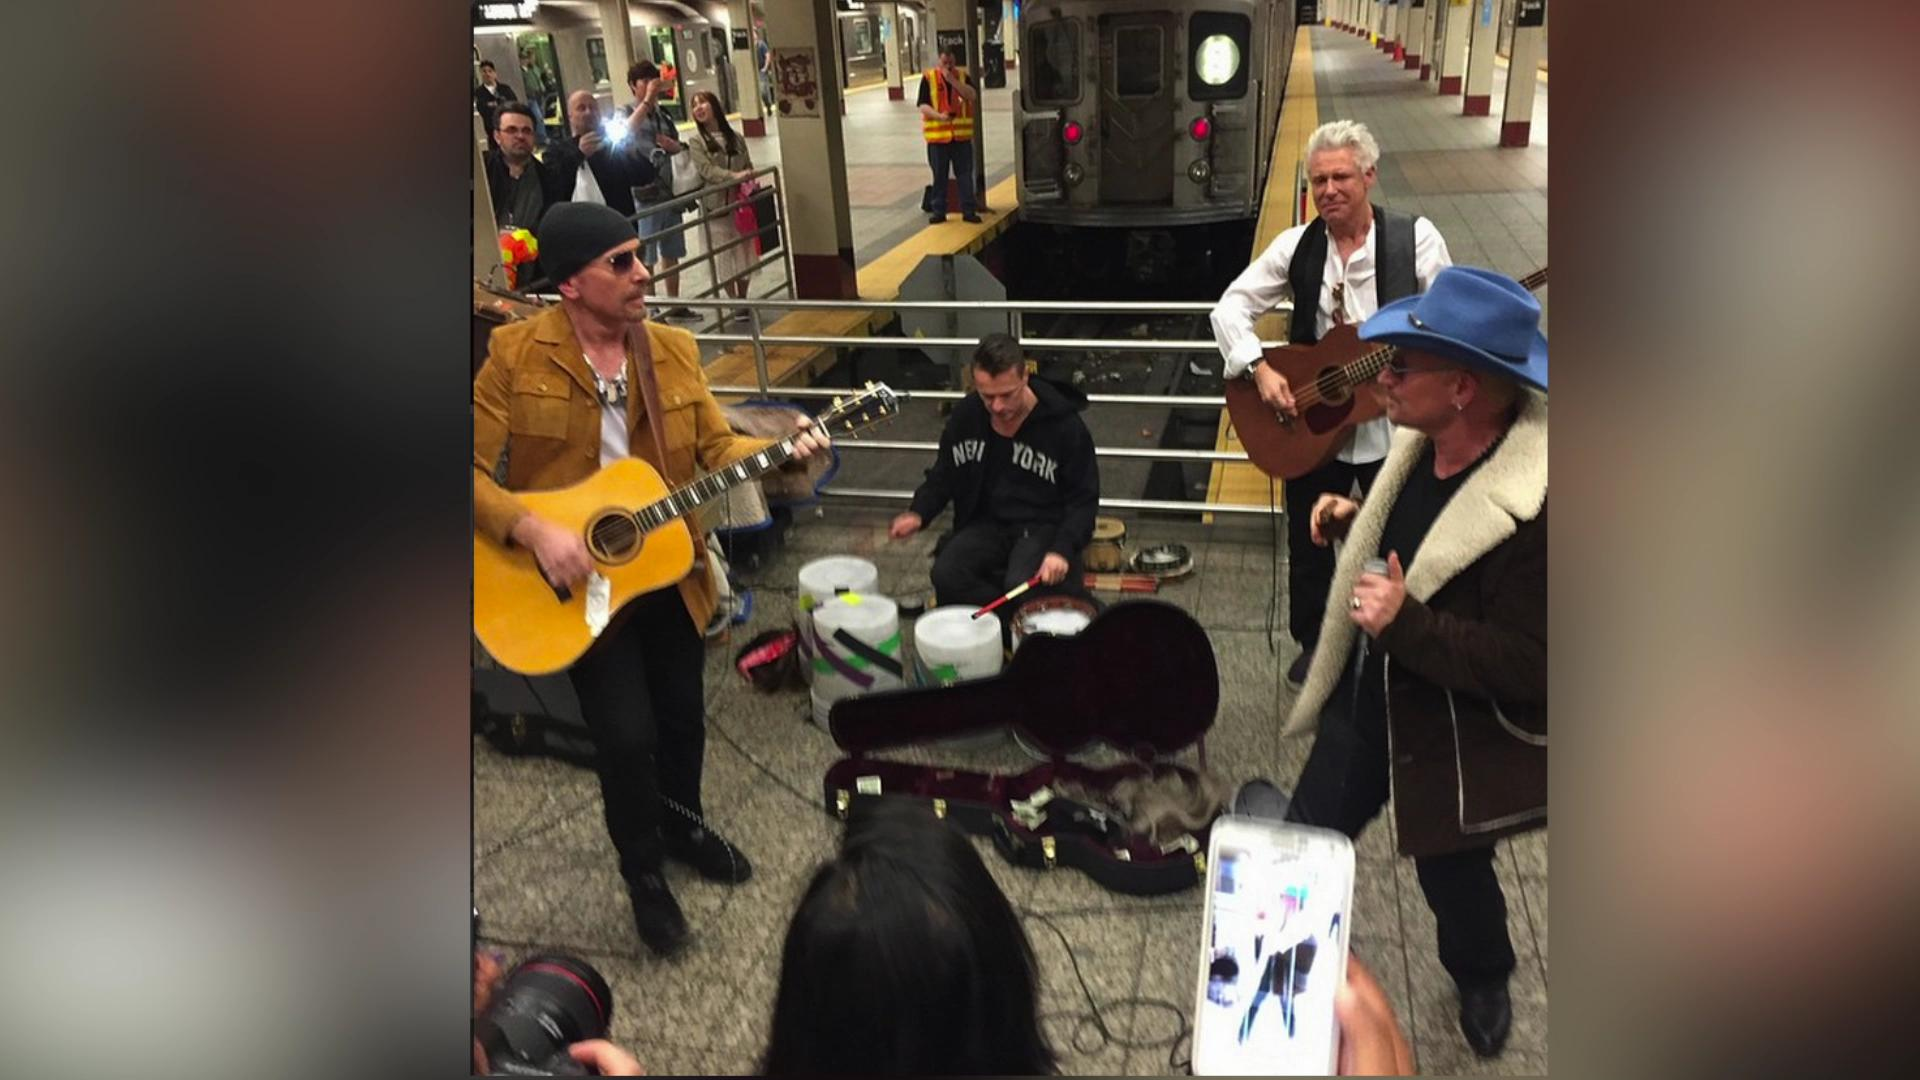 U2 gives surprise performance in NYC subway